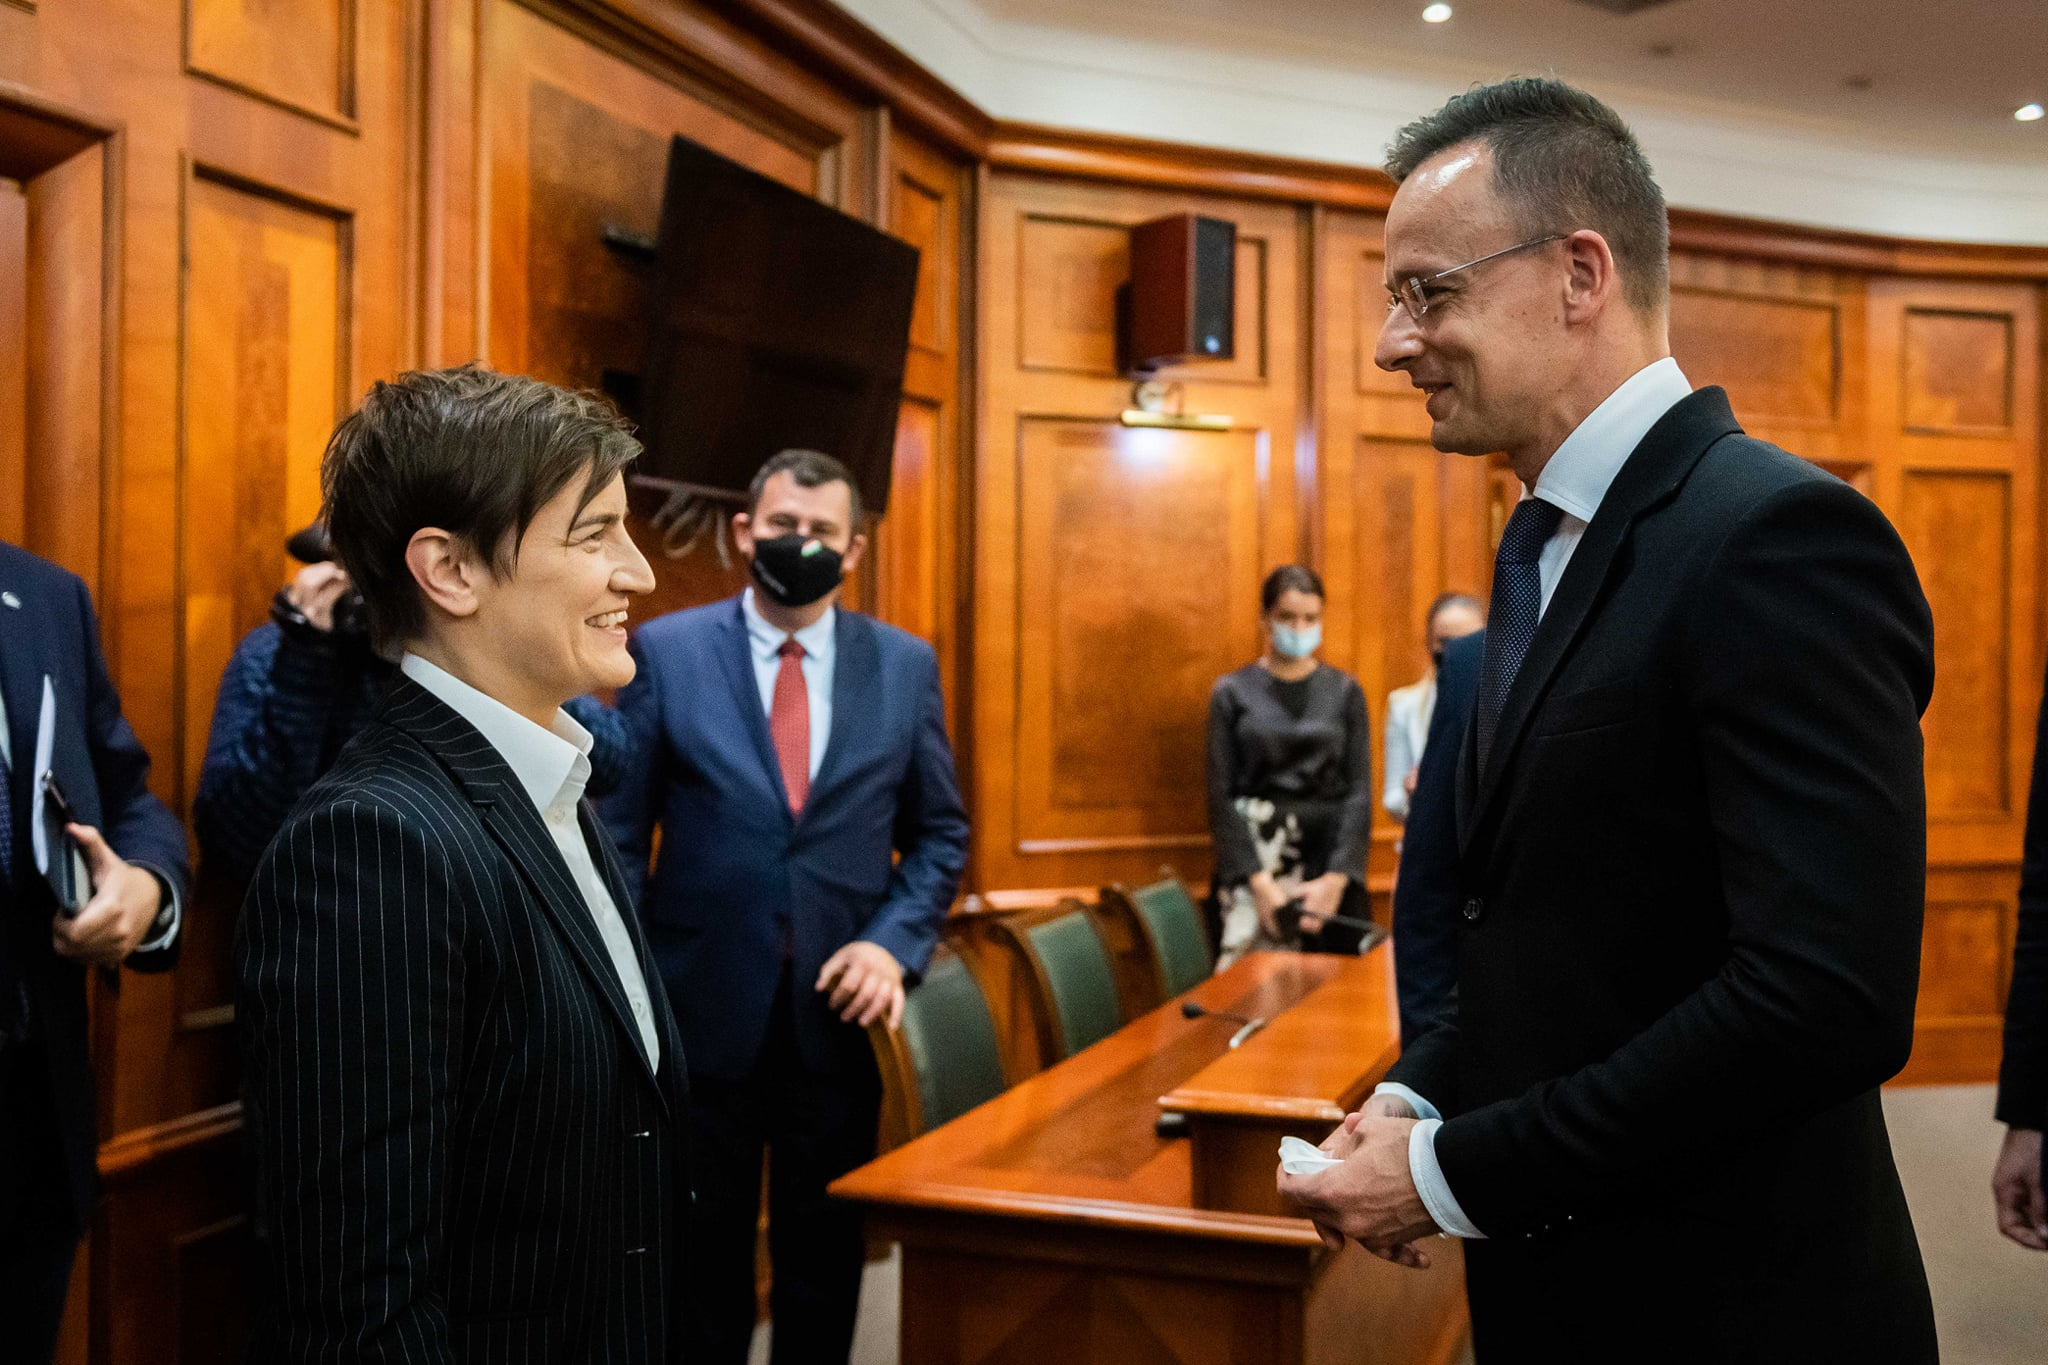 Foreign Minister: Time to Open New EU Accession Chapters with Serbia